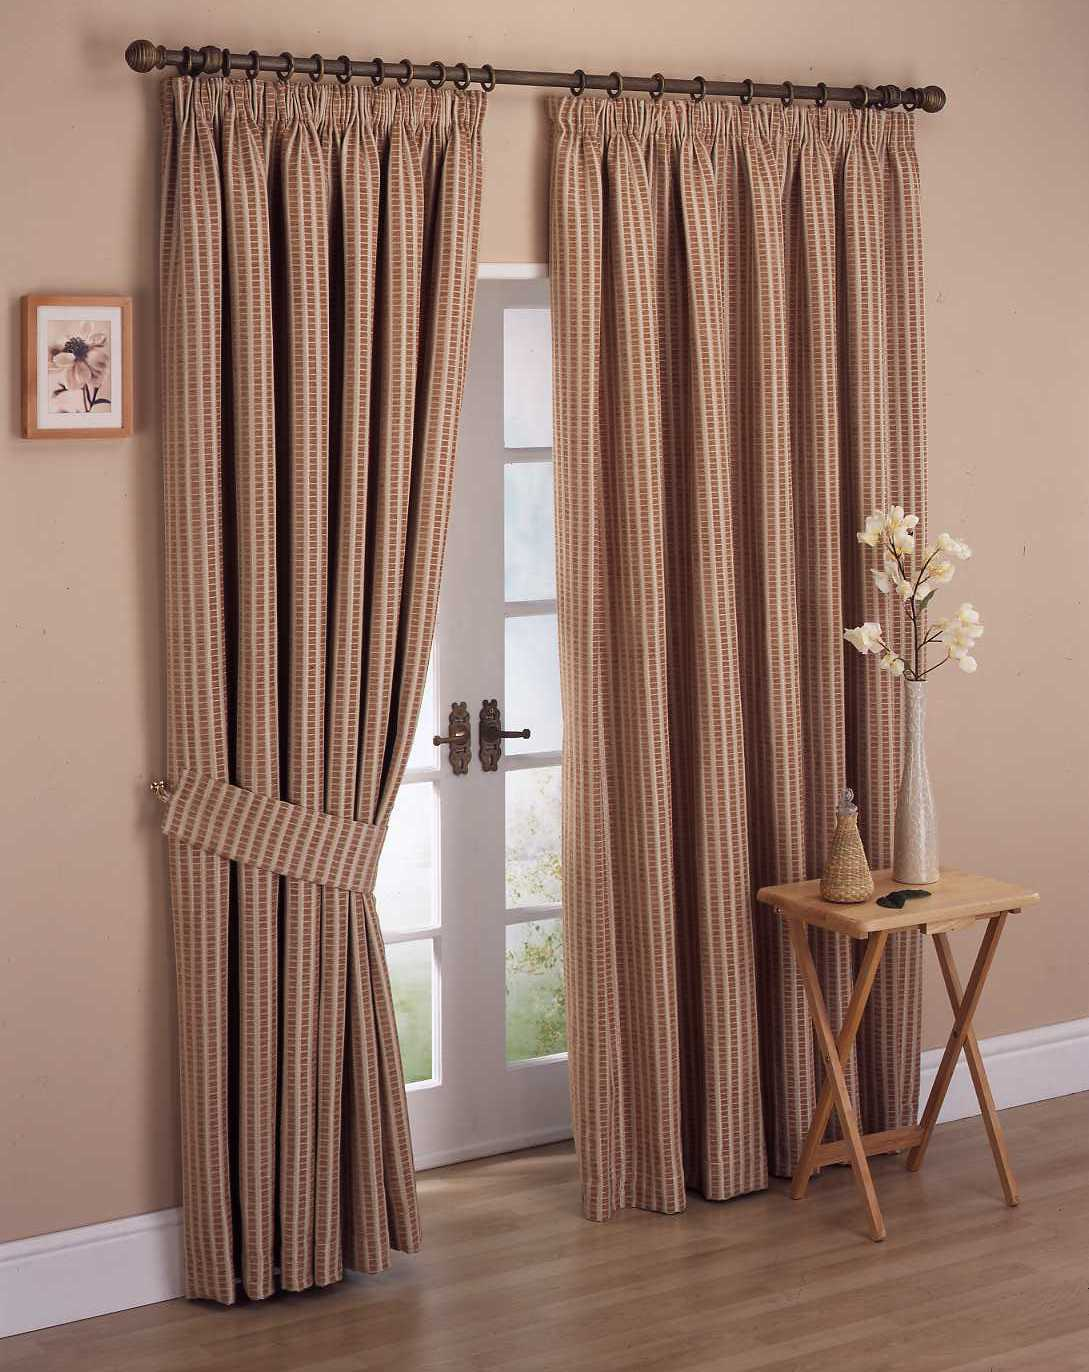 Top catalog of classic curtains designs 2013 - Bedroom curtain designs pictures ...